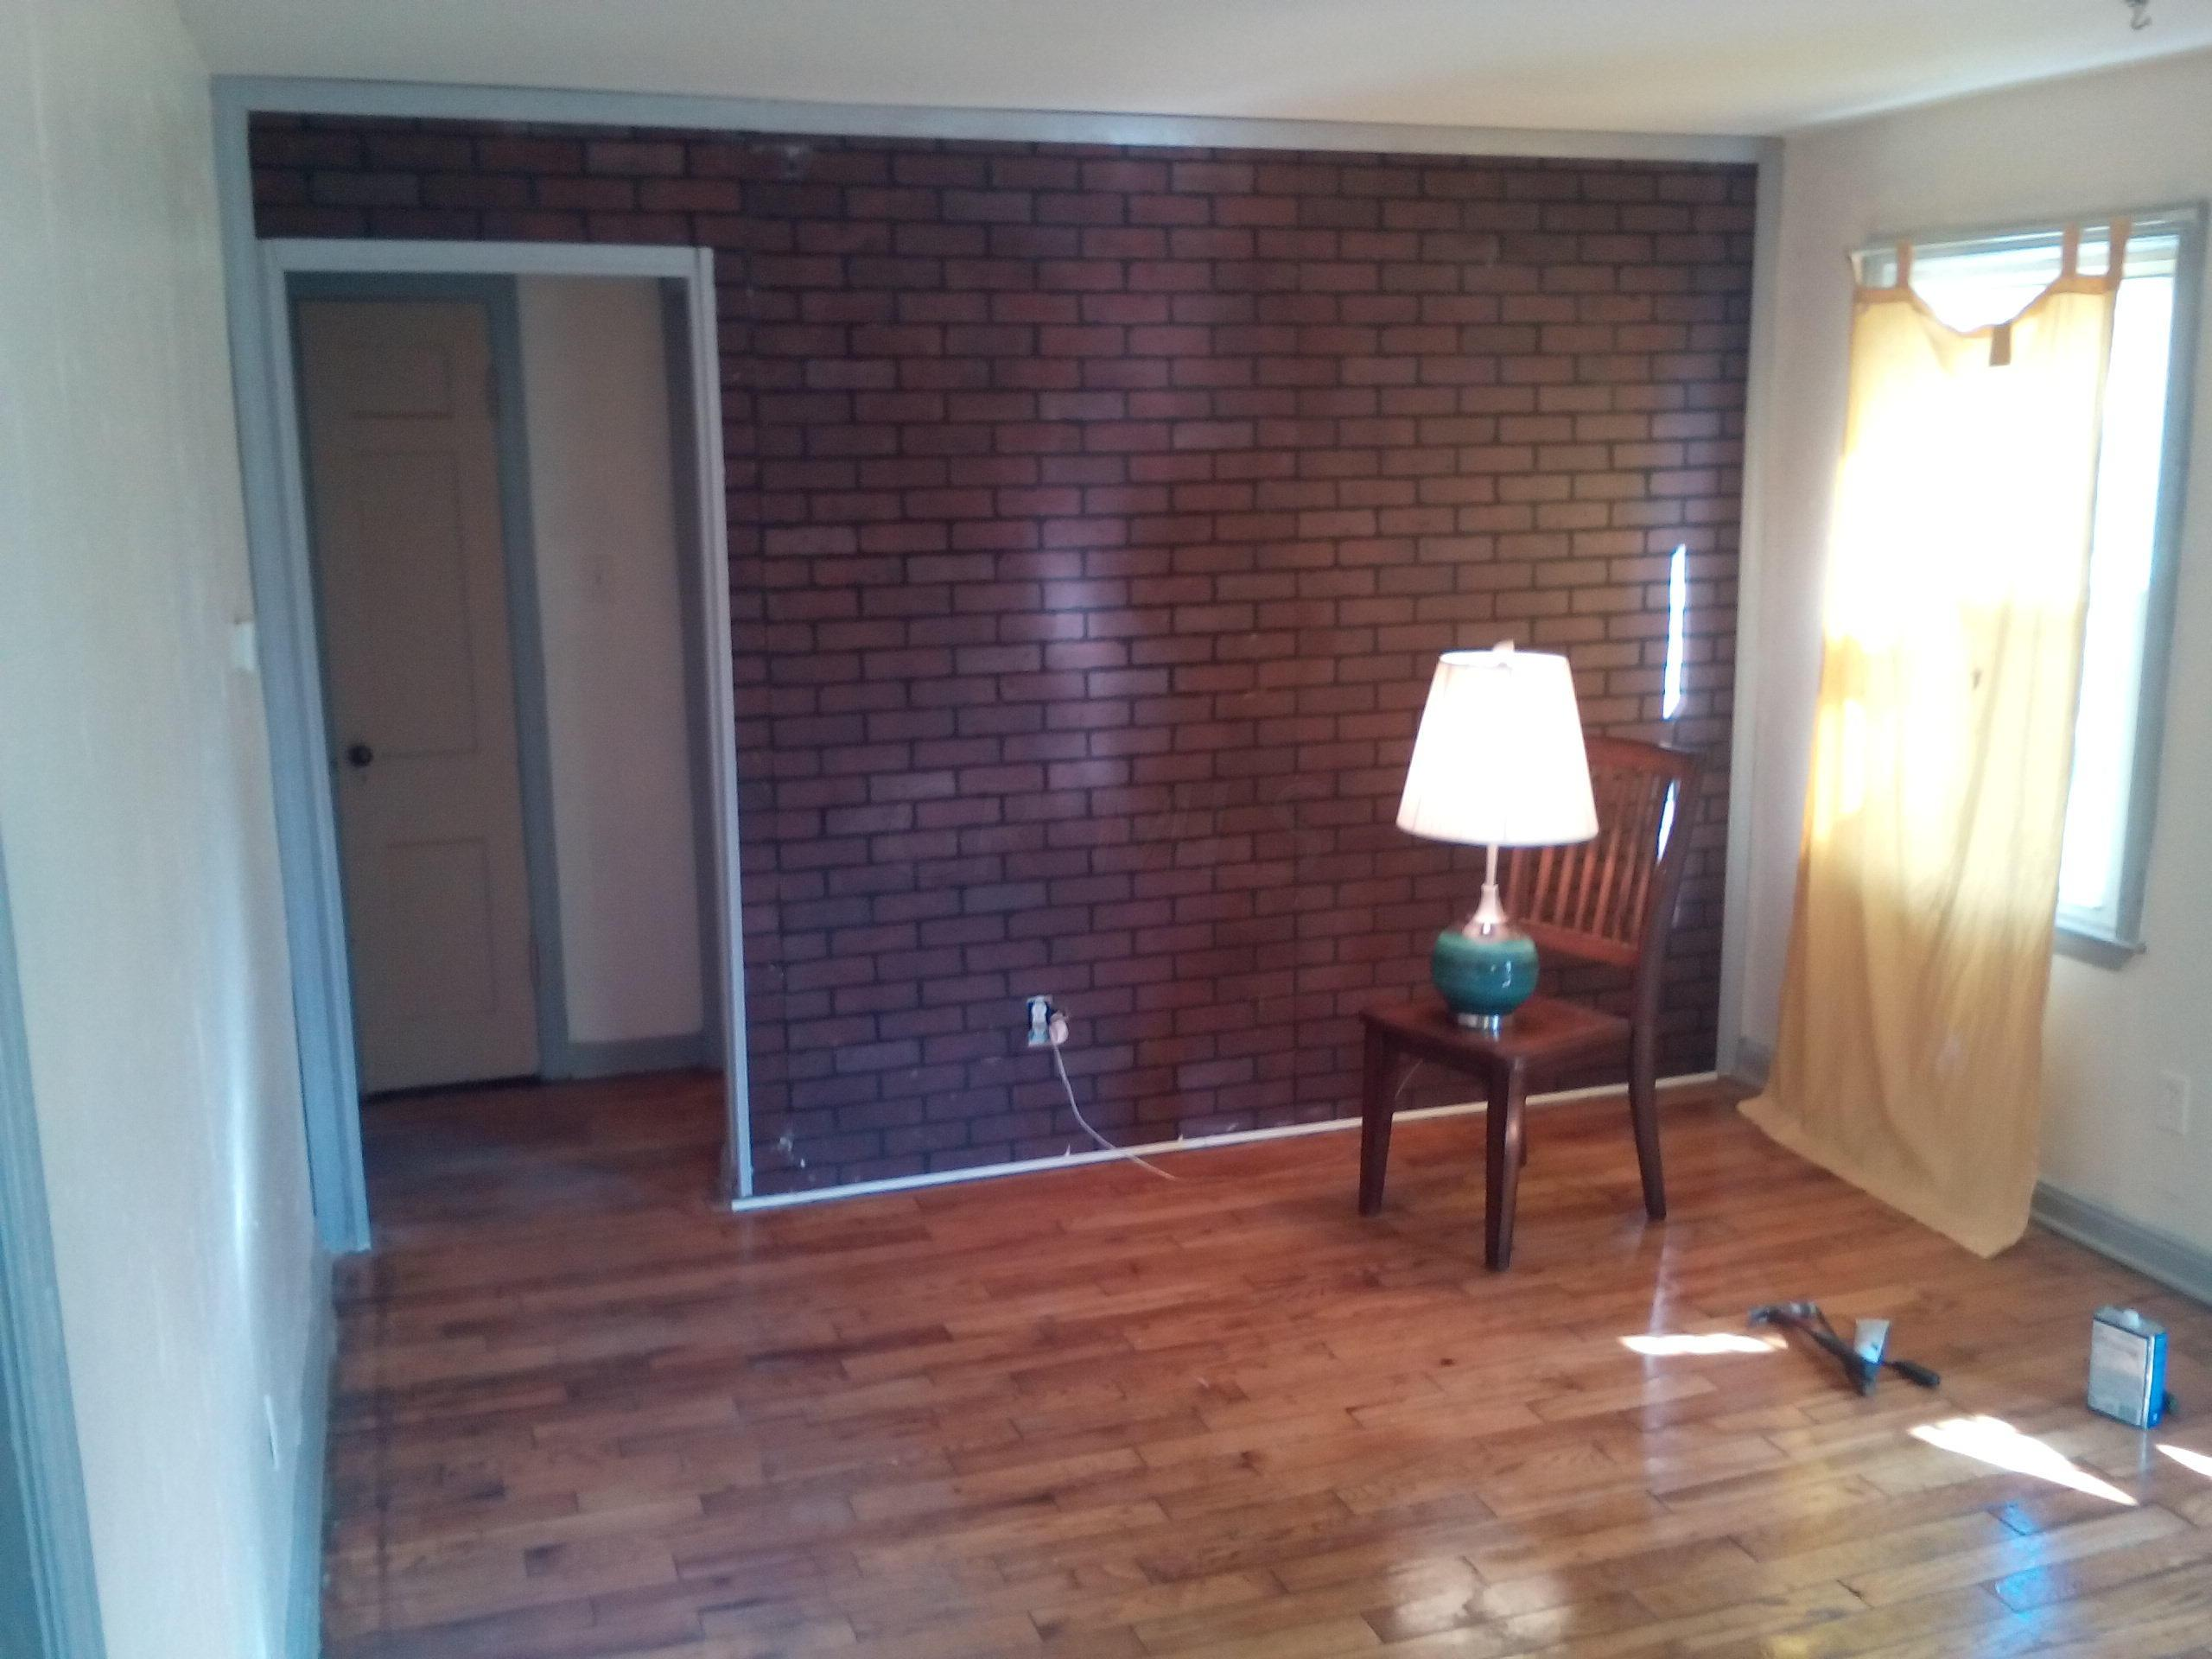 479 Parkwood Avenue, Columbus, Ohio 43203, 3 Bedrooms Bedrooms, ,1 BathroomBathrooms,Residential,For Sale,Parkwood,220041141